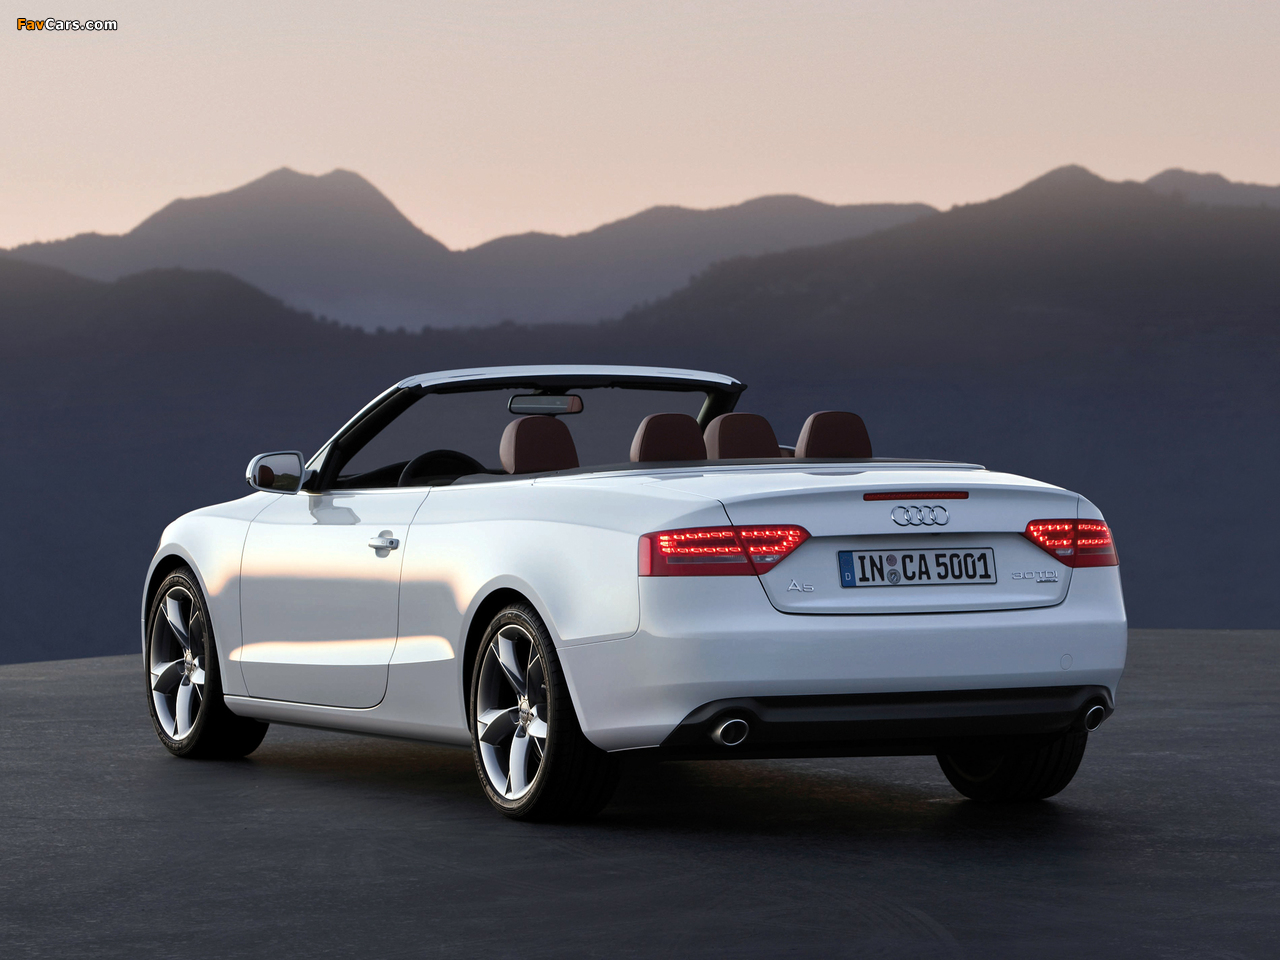 Audi A5 3 0 Tdi Cabriolet 2009 11 Pictures 1280x960